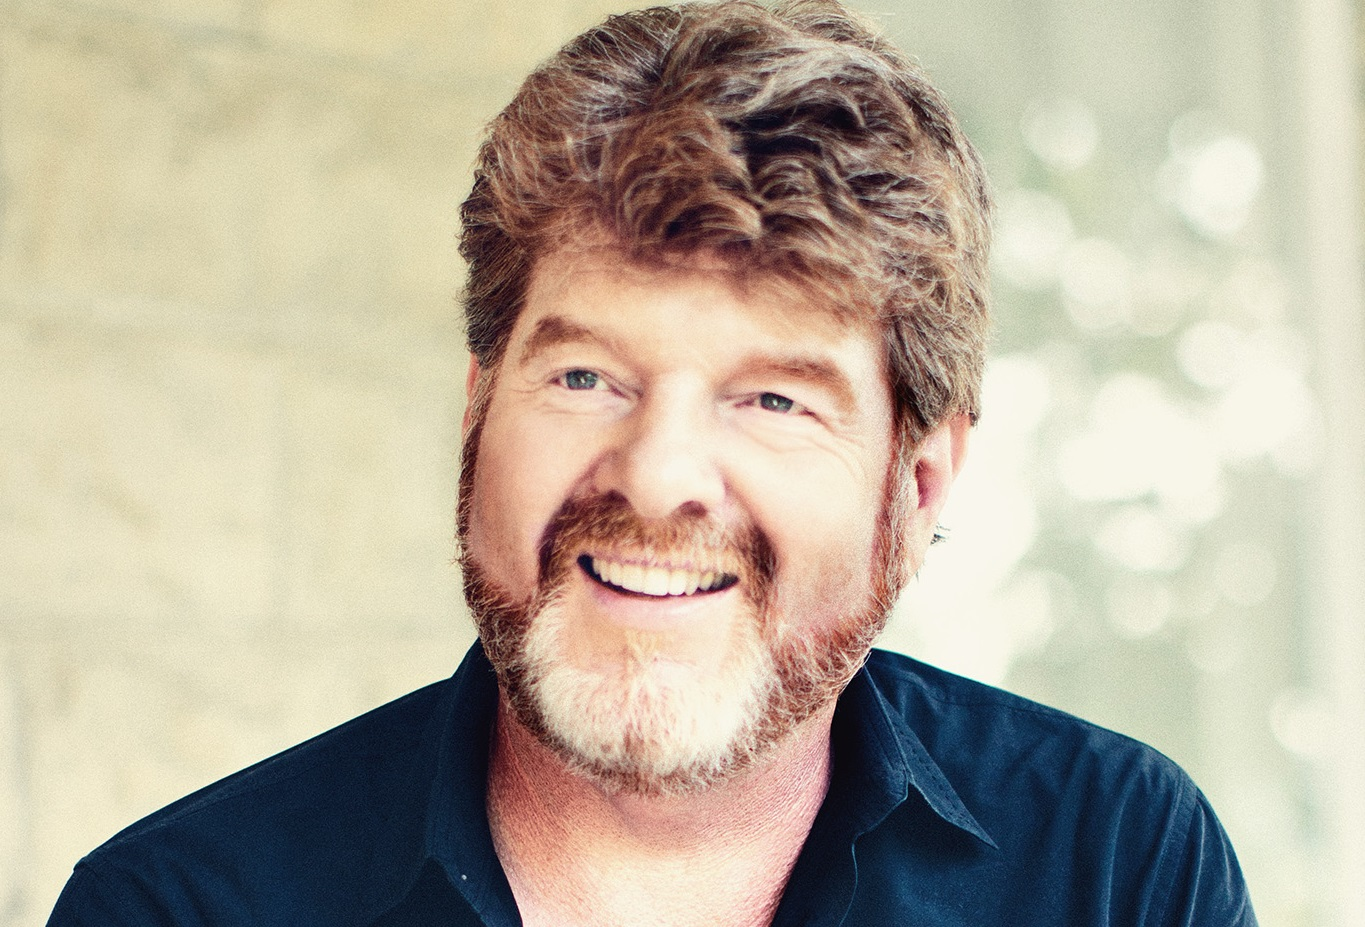 BT - Mac McAnally - May 9, 2019, doors 6:30pm